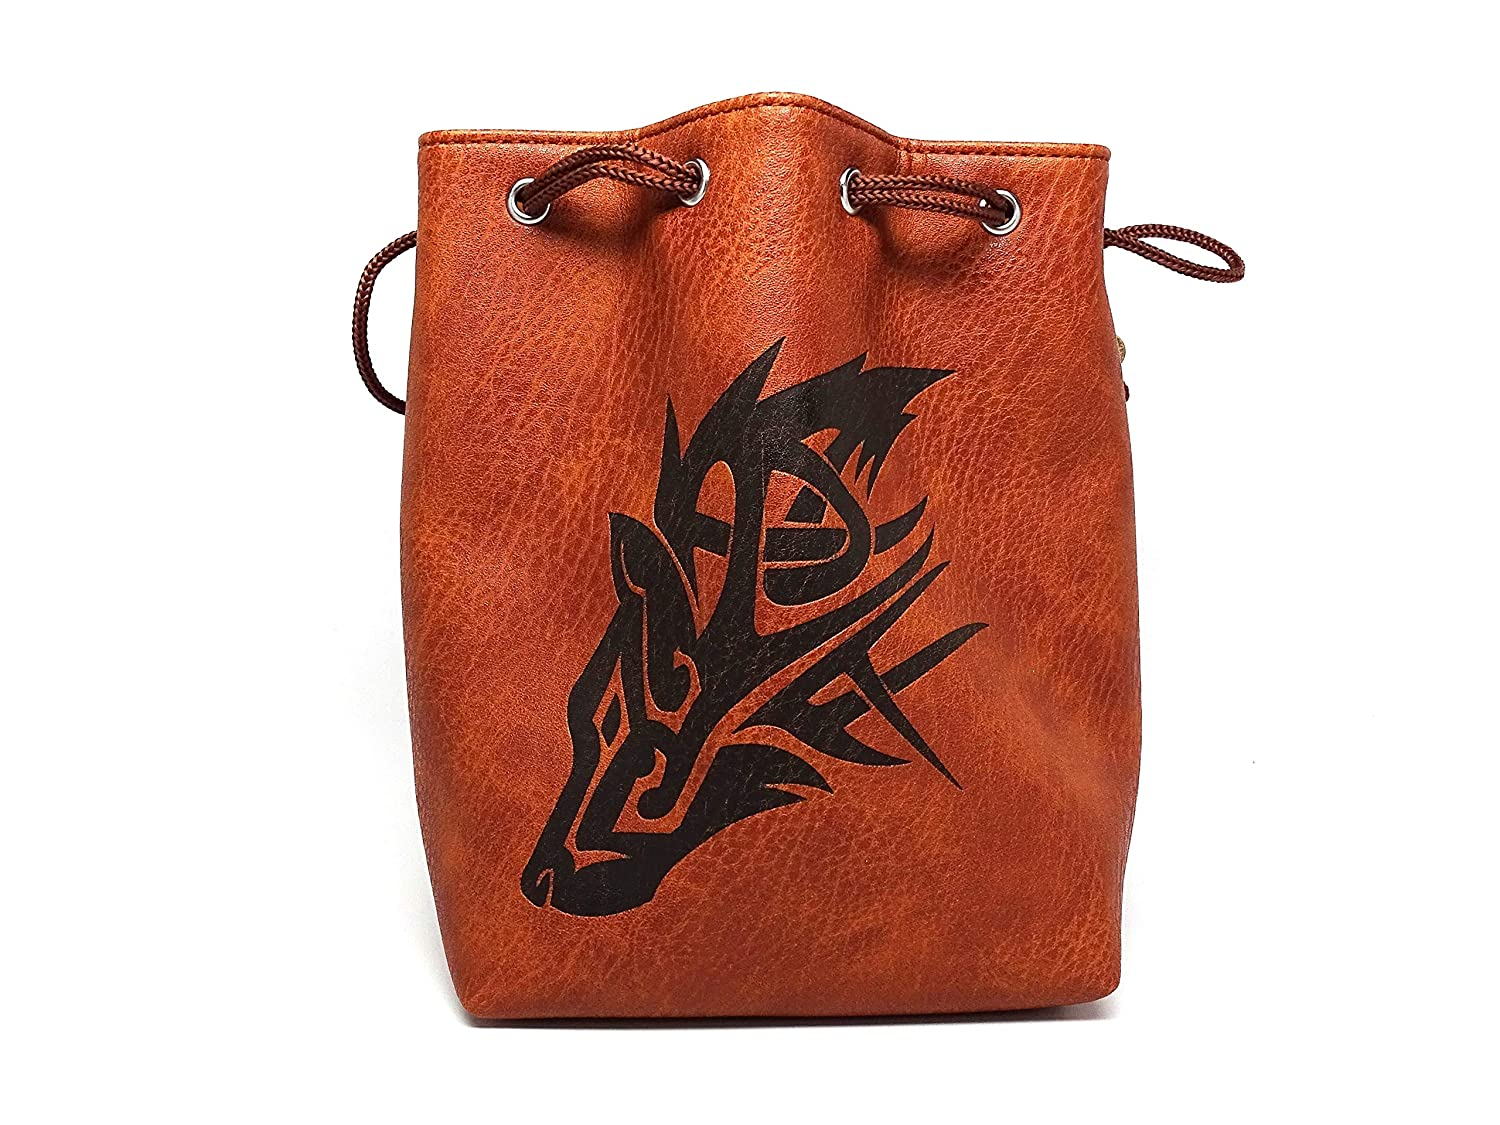 Brown Leather Lite Large Dice Bag Wolf Design - Brown Faux Leather Exterior Lined Interior - Stands up on its Own Holds 400 16mm Polyhedral Dice   B07GD7B17S